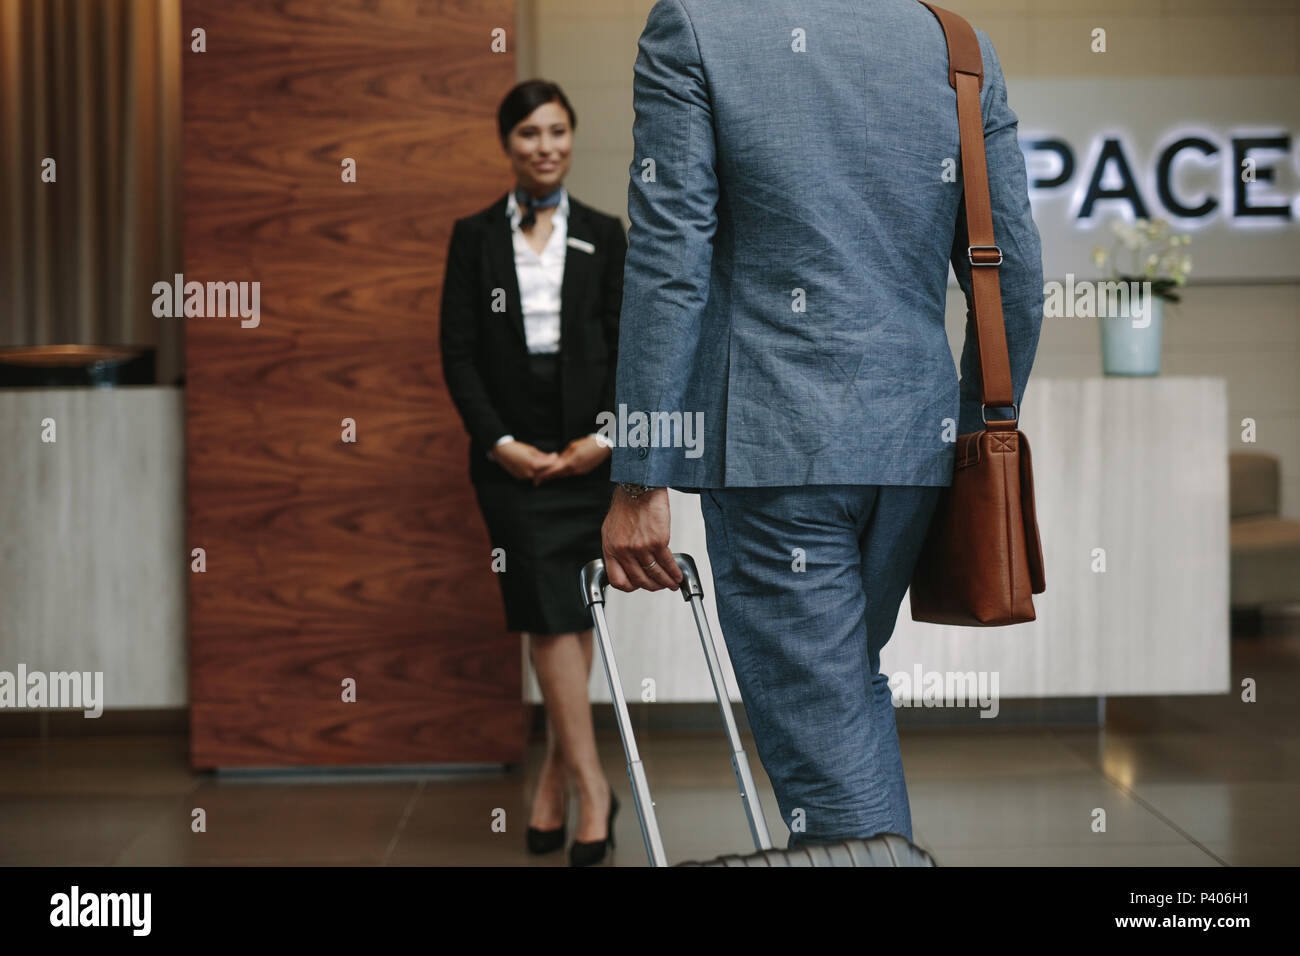 Businessman carrying suitcase and walking towards a receptionist waiting for welcome the guests. Business traveler arriving at hotel for conference. - Stock Image